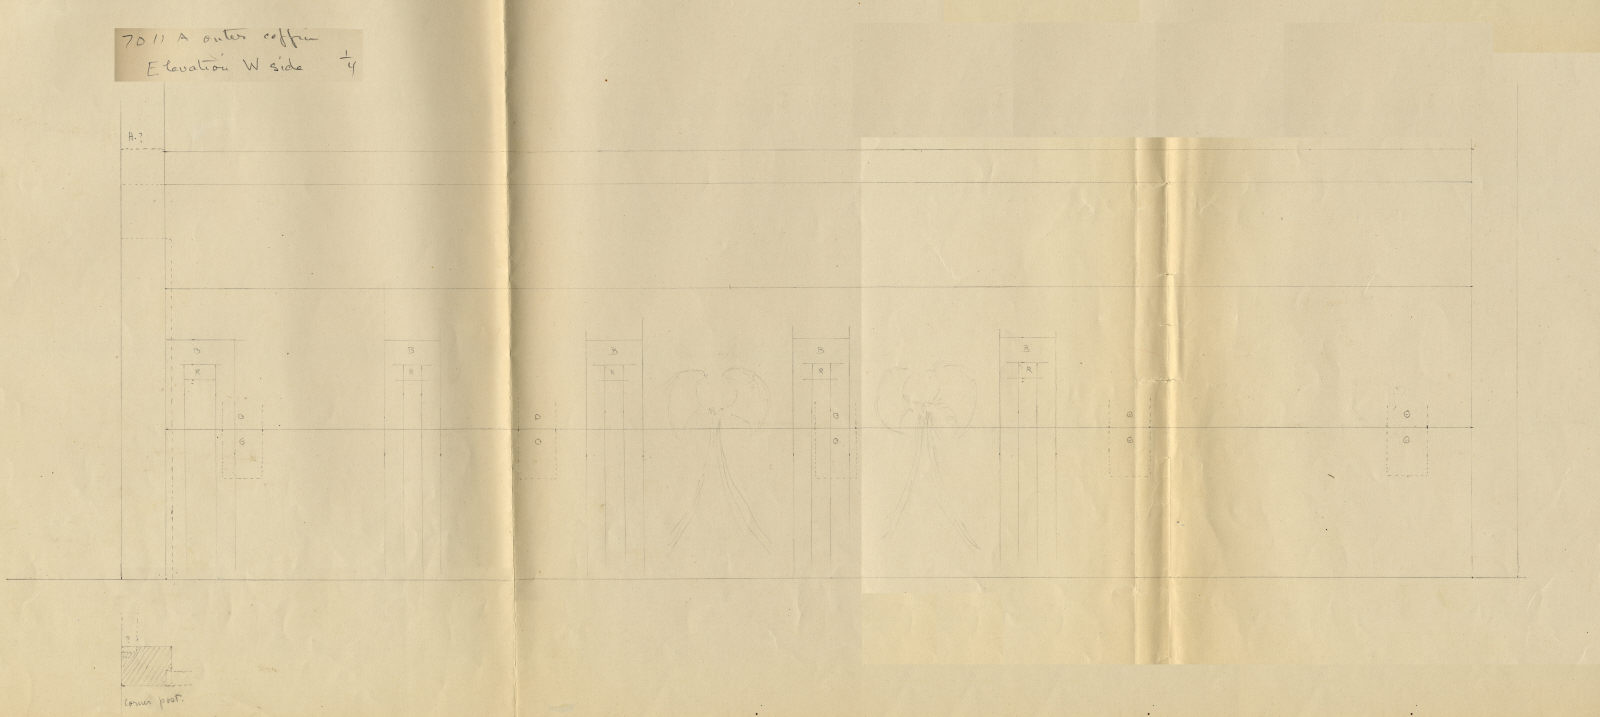 Drawings: G 7011, Shaft A: outer coffin, W side